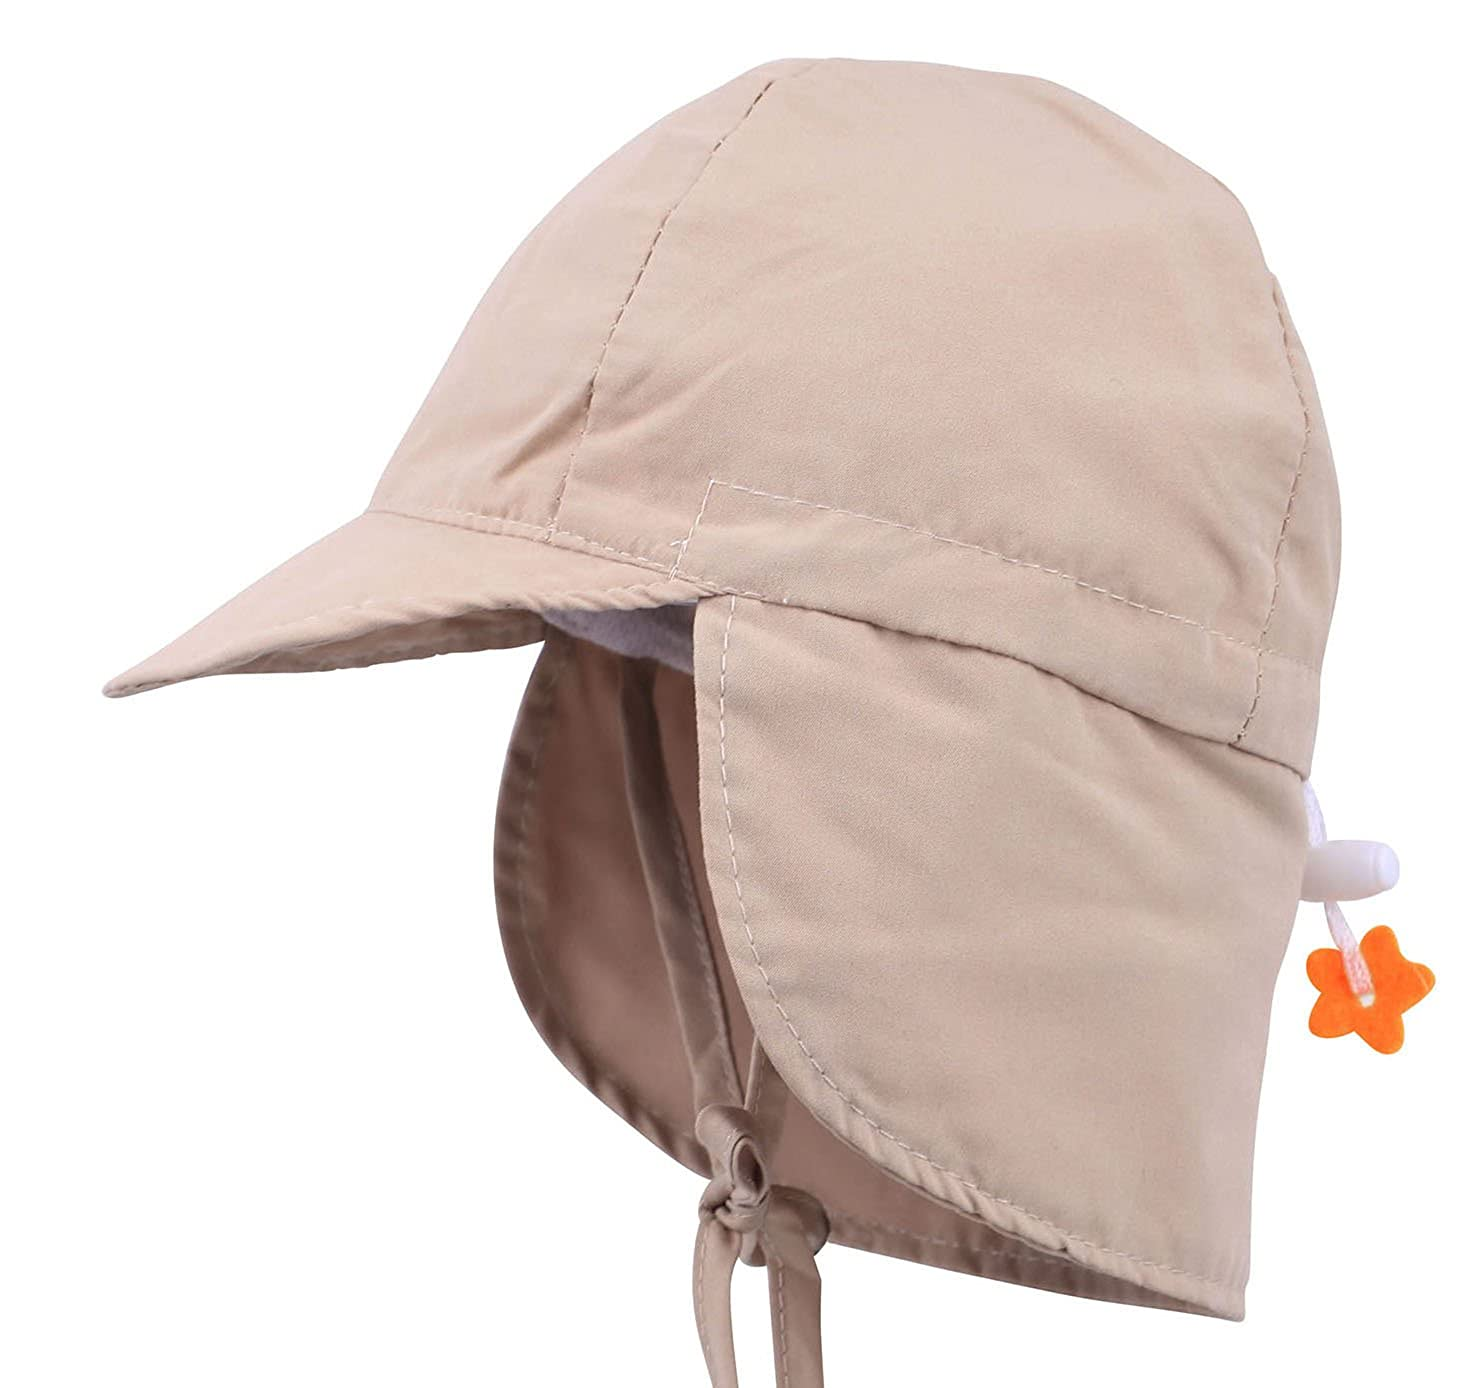 7df000f3 Cute safari style trooper summer hat for toddlers! Adjustable drawstring  allows for your child to fit into the hat even if they grow a little.